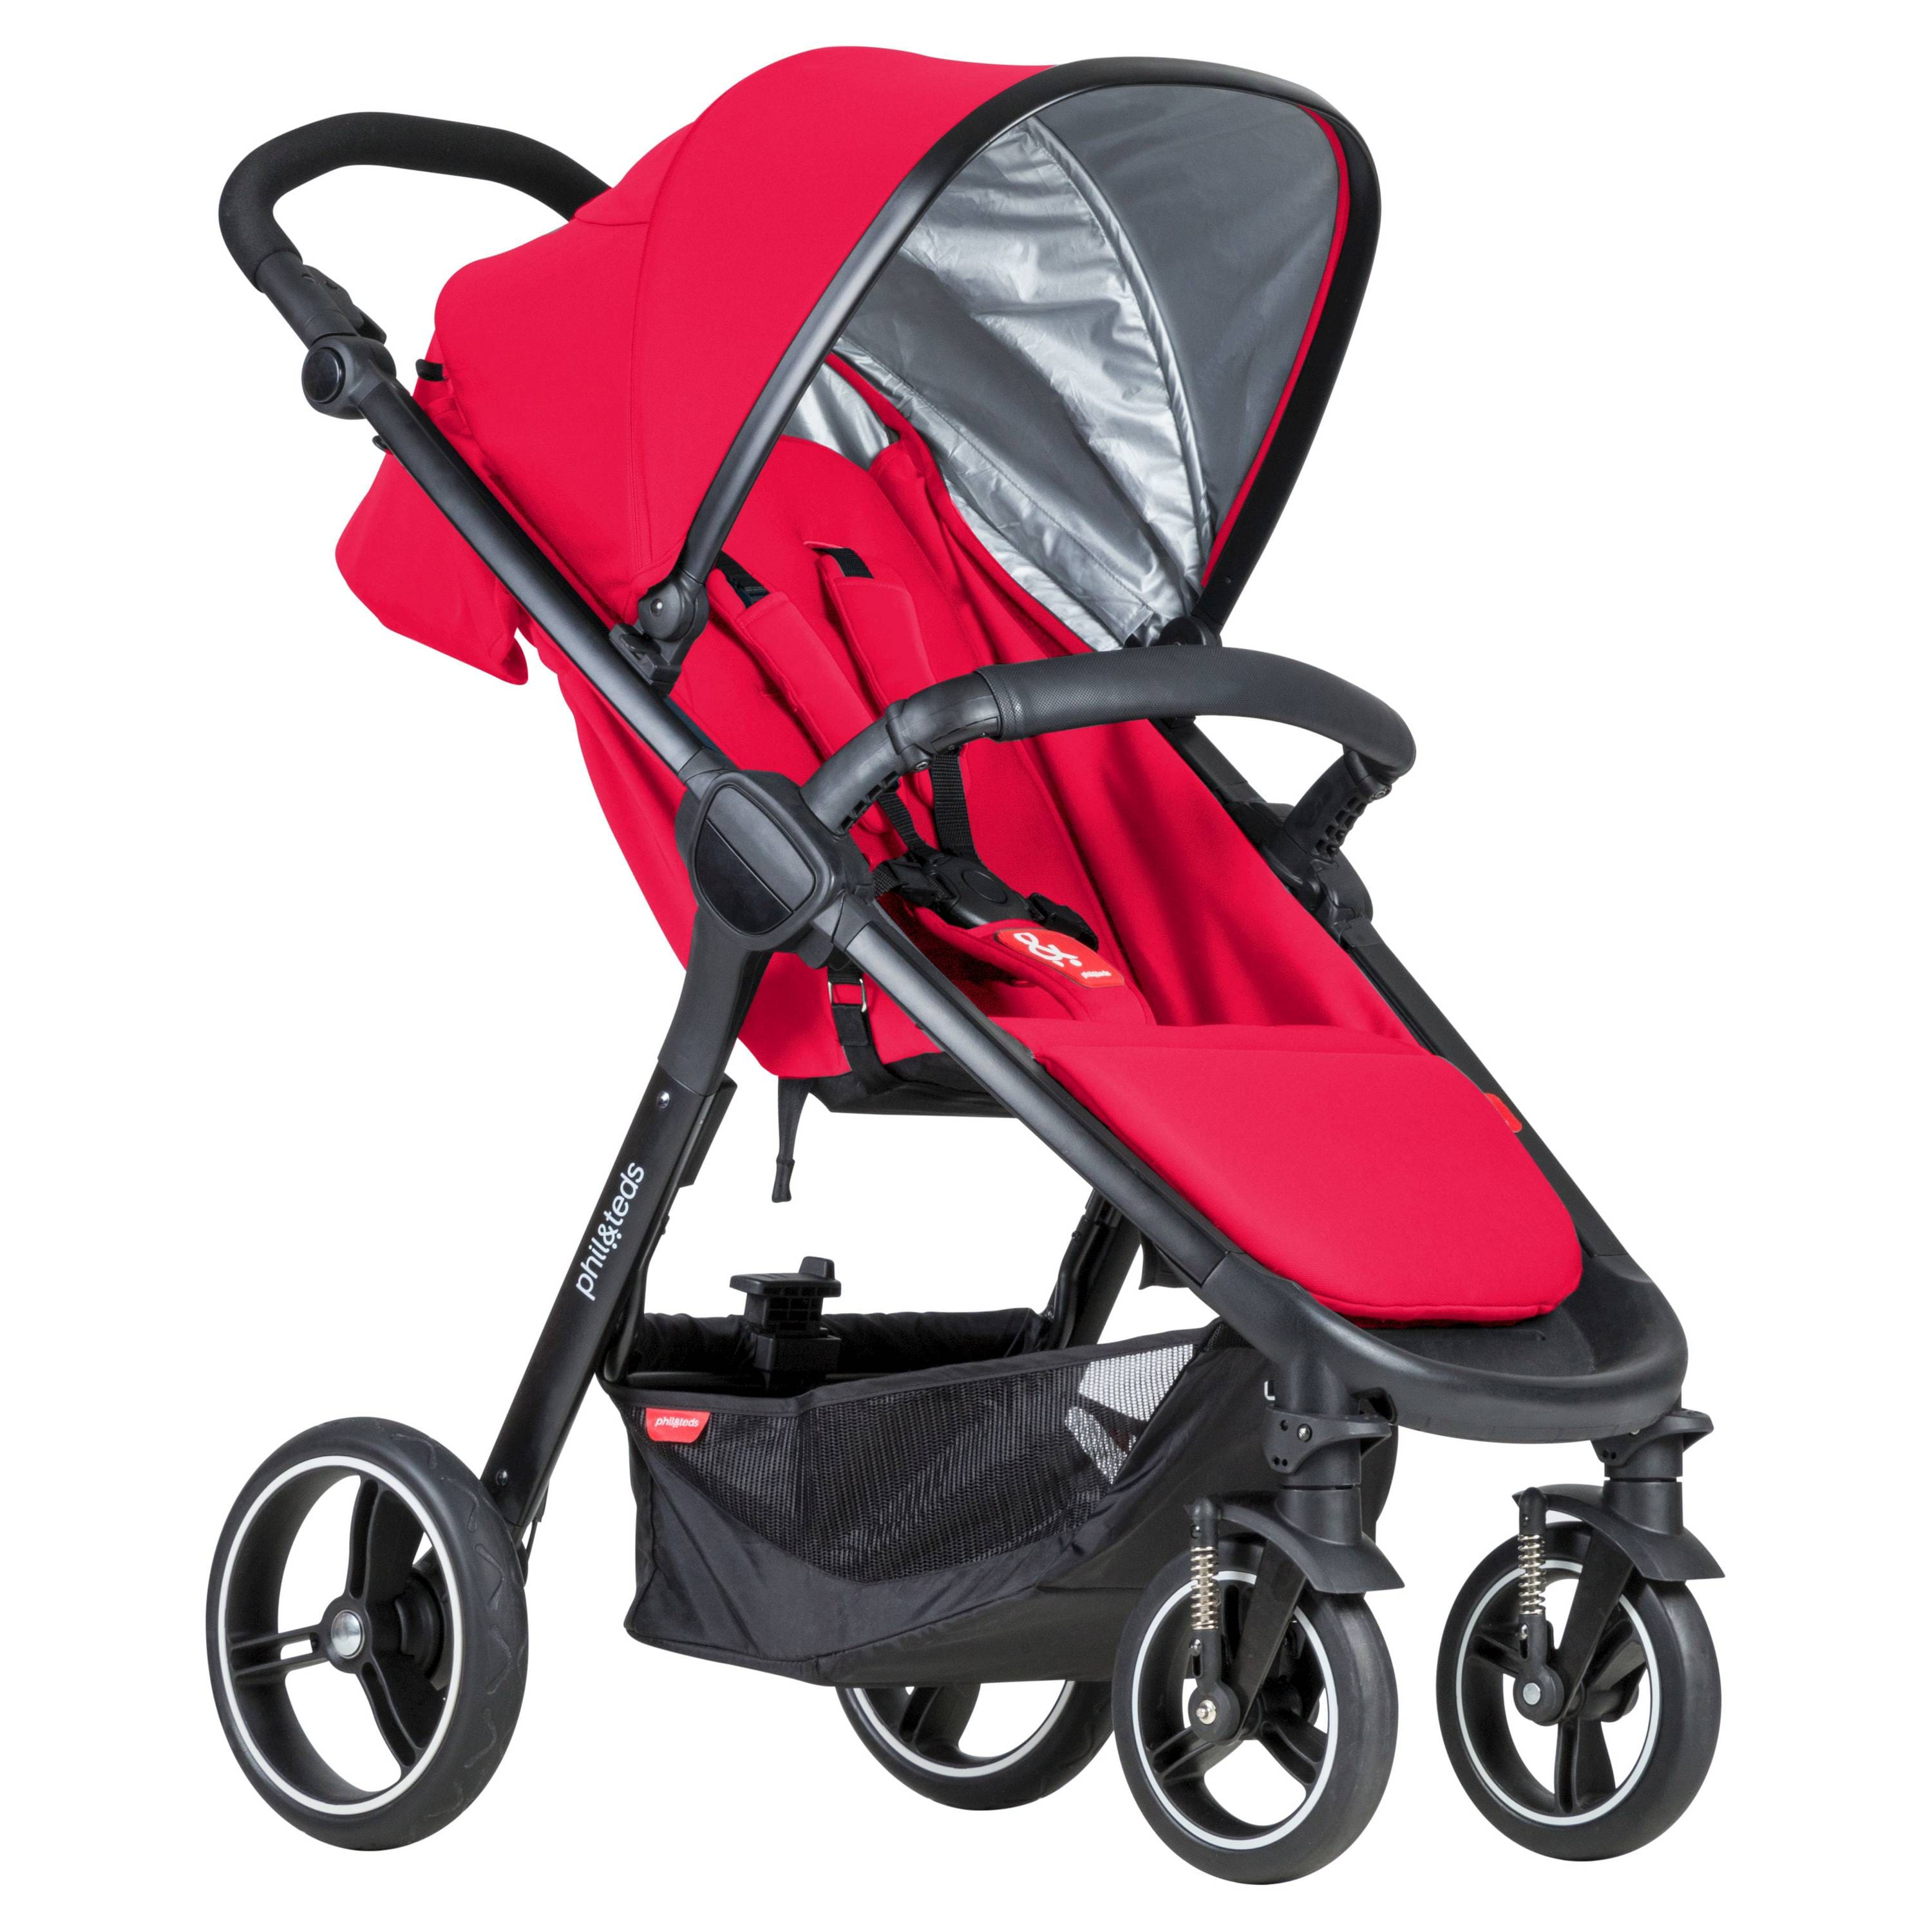 phil & teds Smart Stroller in Raspberry, Cyan, or Cherry for $130